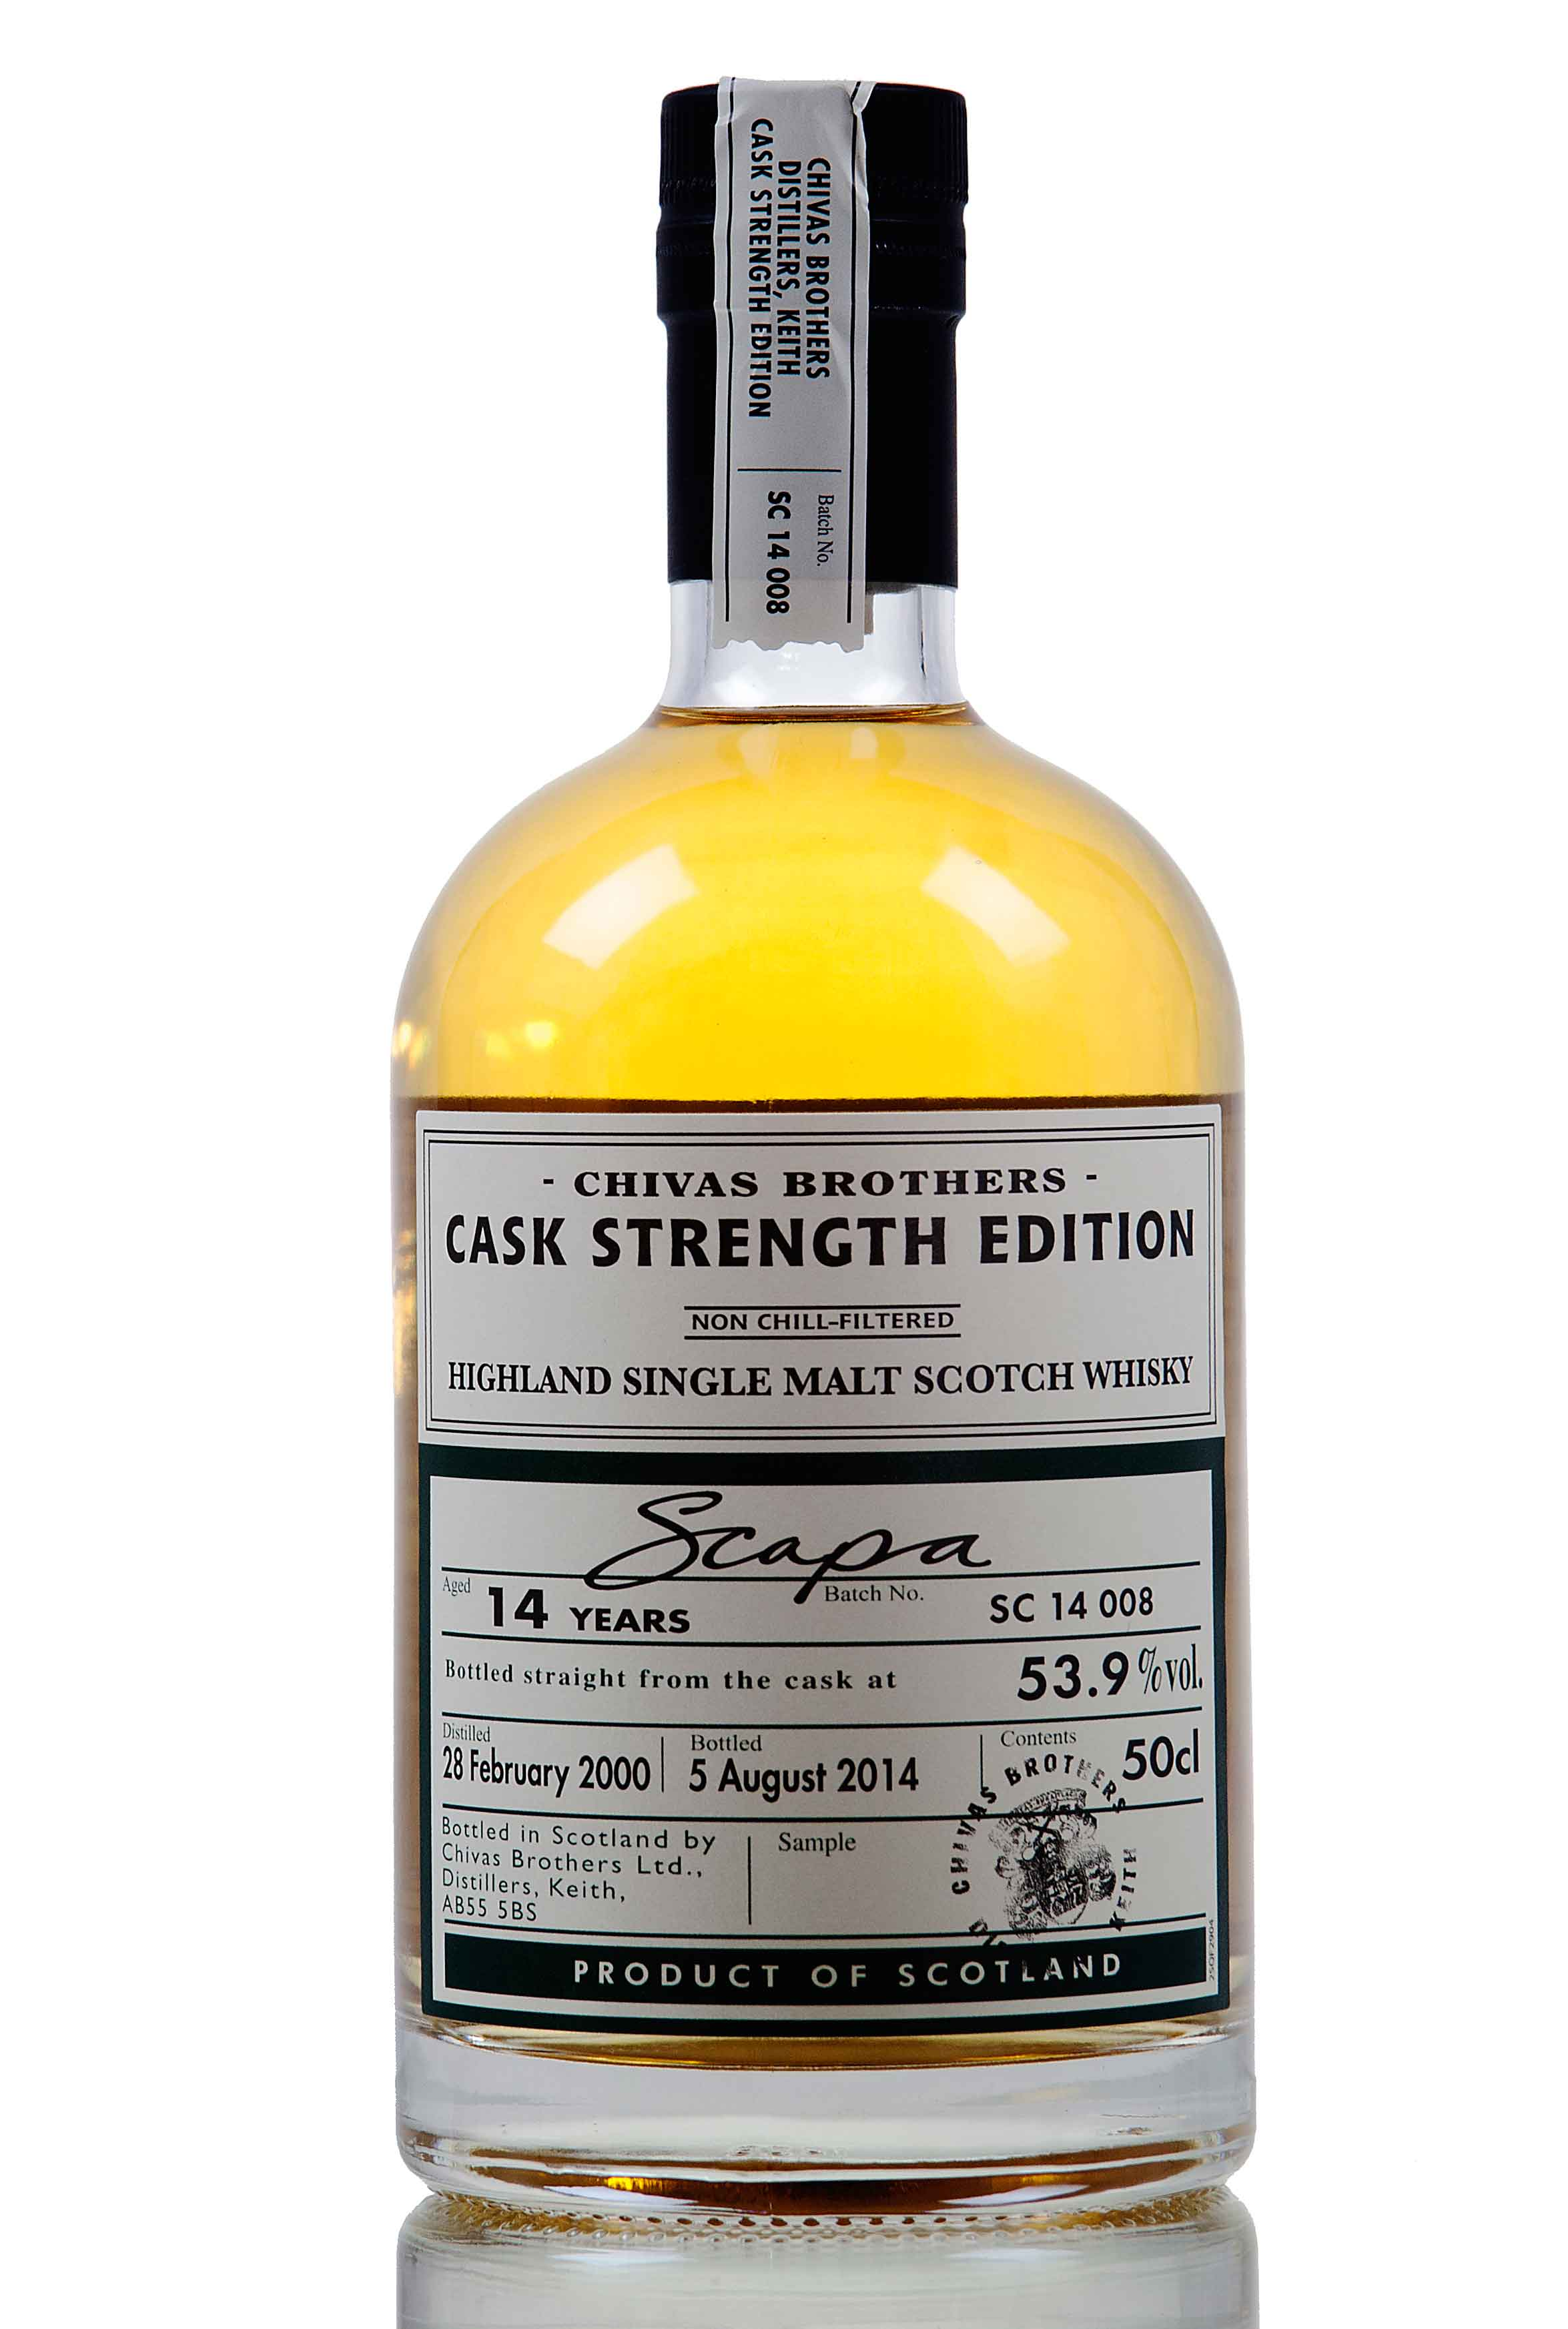 Scapa 14 Year Old / 2000 / Cask Strength Edition